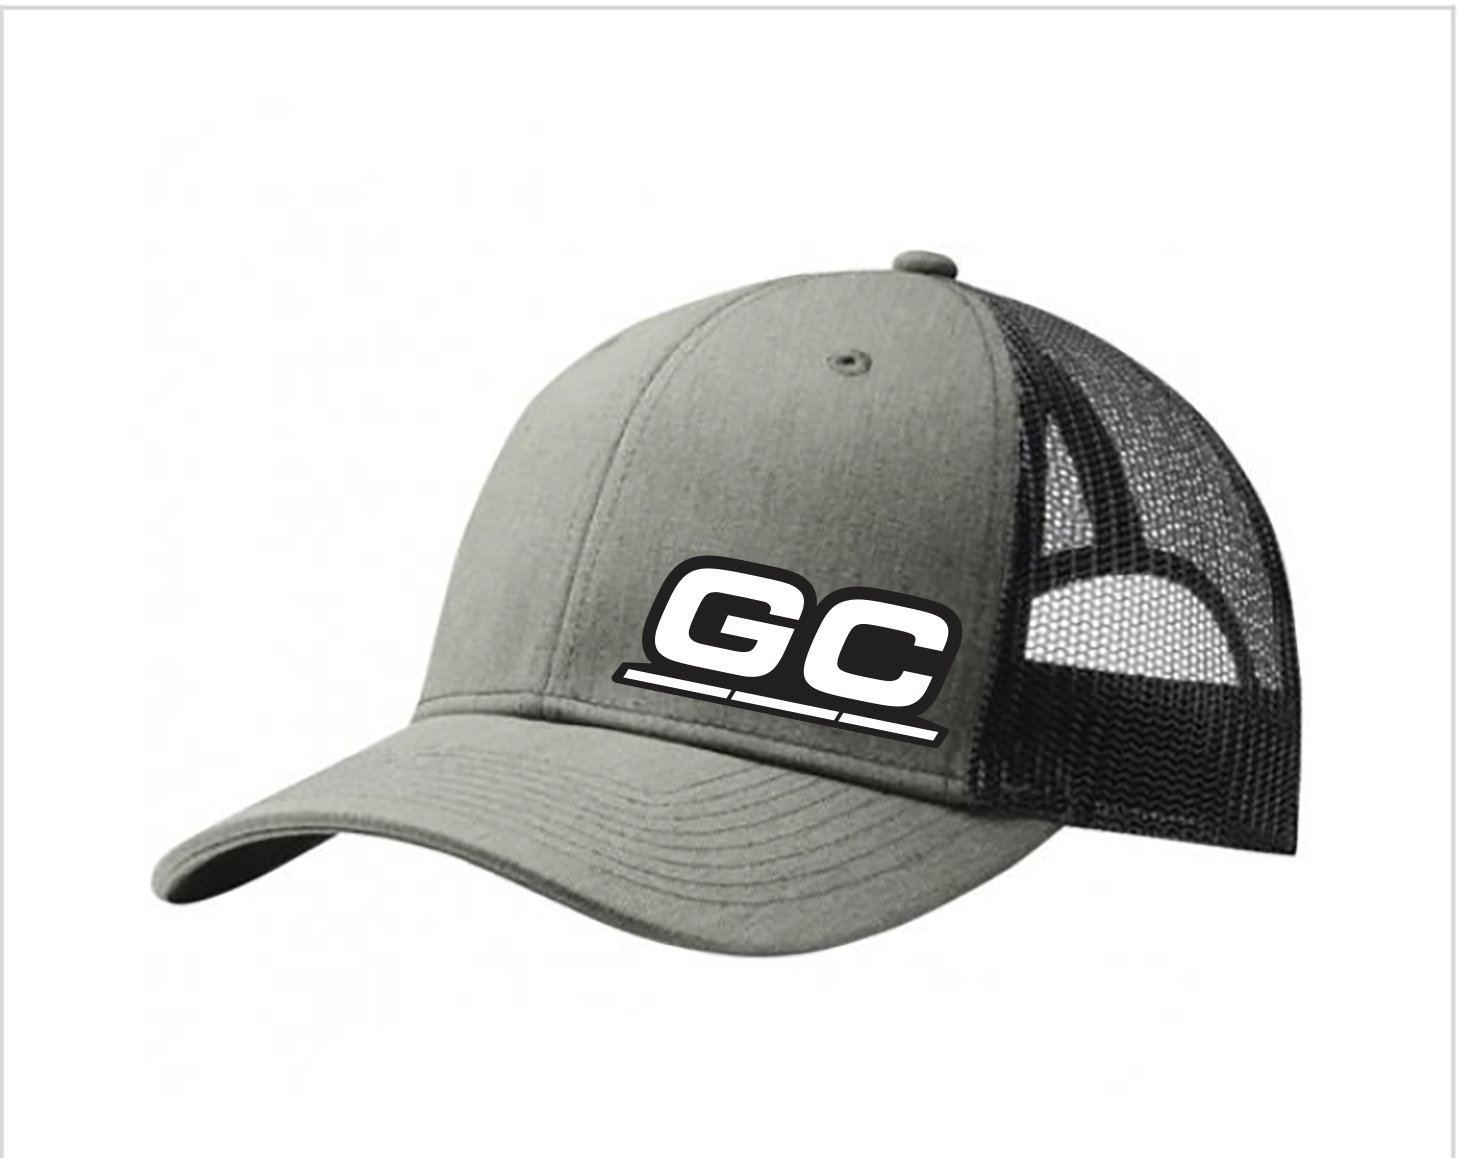 Heather Gray/Black GC Cooling Embroidered Hat